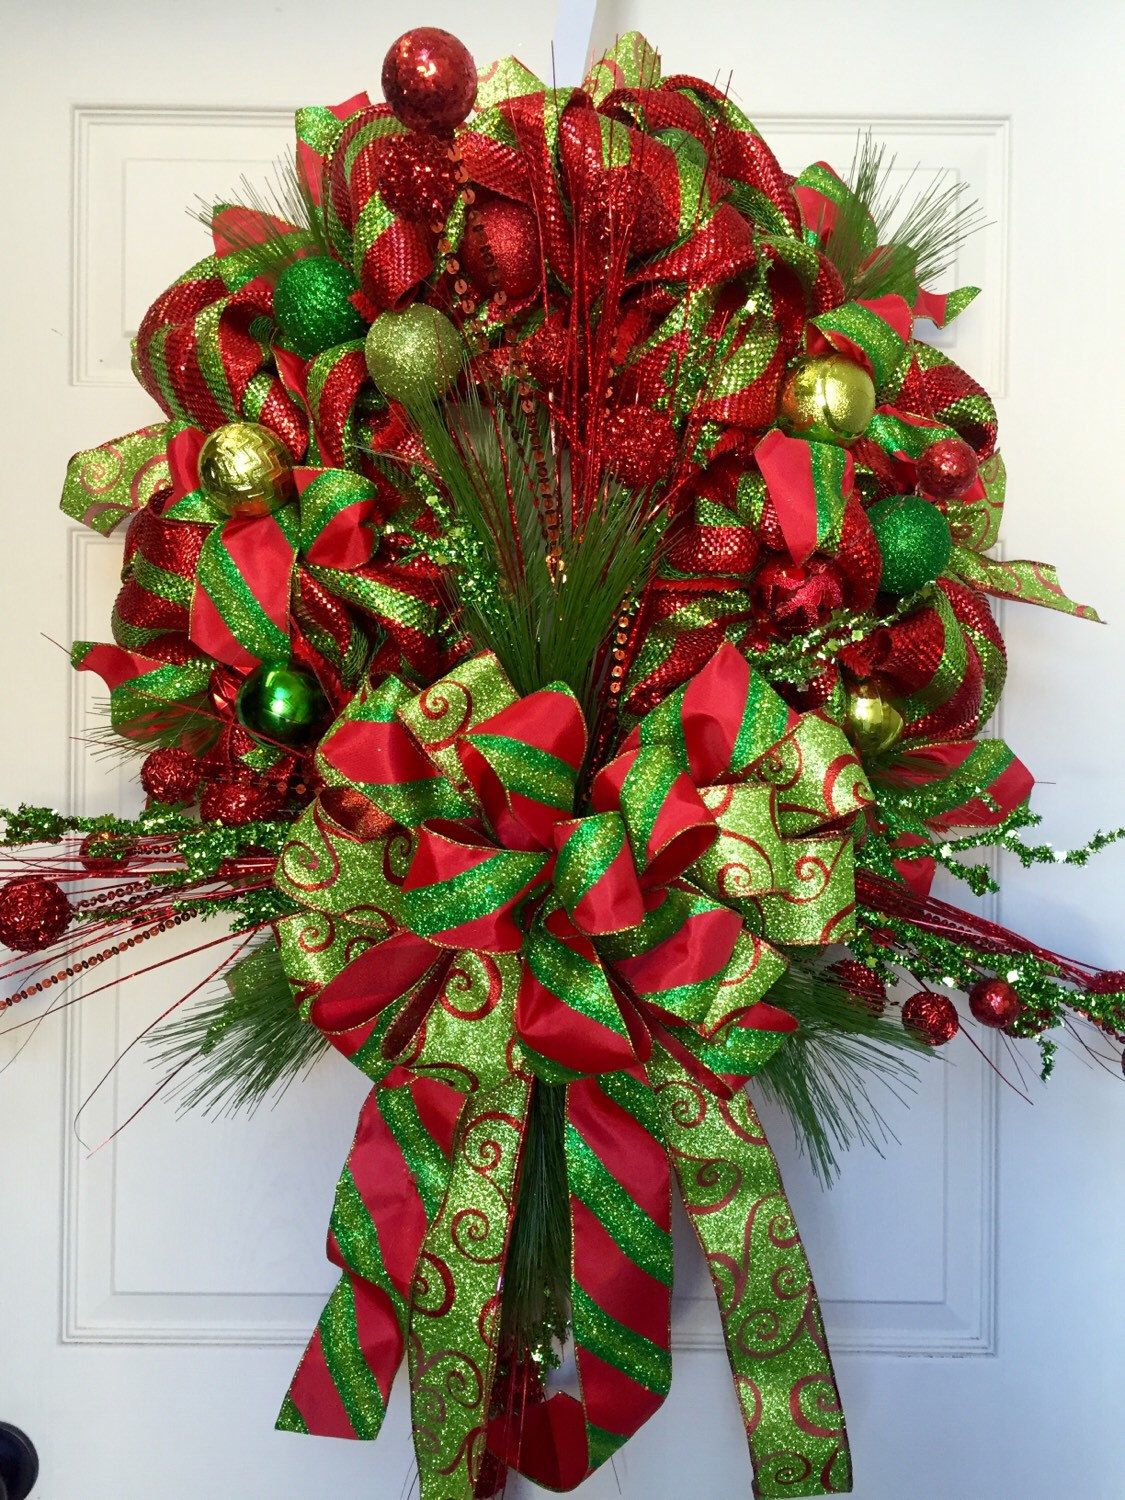 christmas mesh wreath by williamsfloral on etsy httpswwwetsycom - Christmas Mesh Wreath Ideas